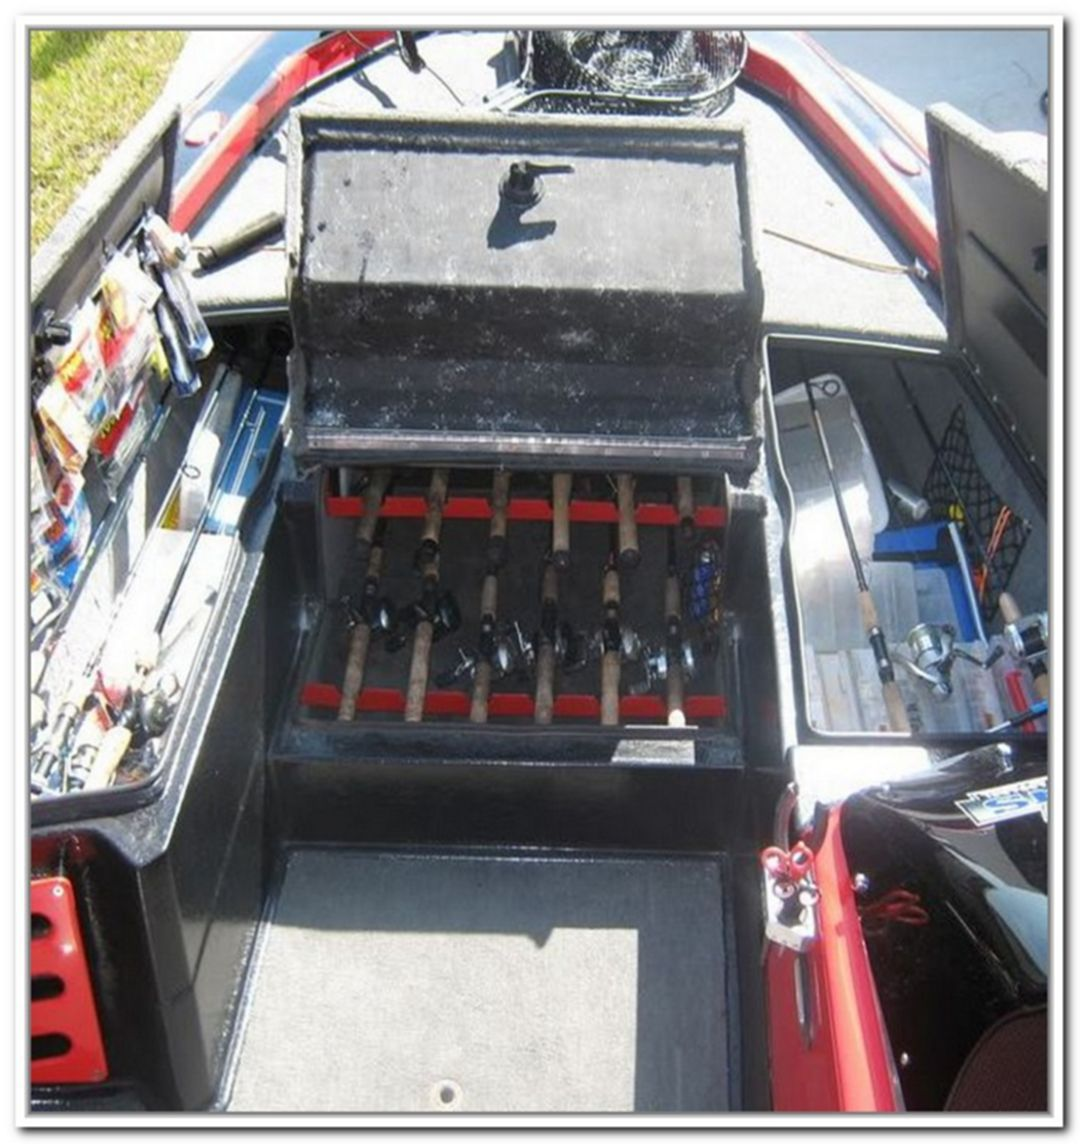 hight resolution of best boat organization ideas to keep your boat clean 55 excellent ideas